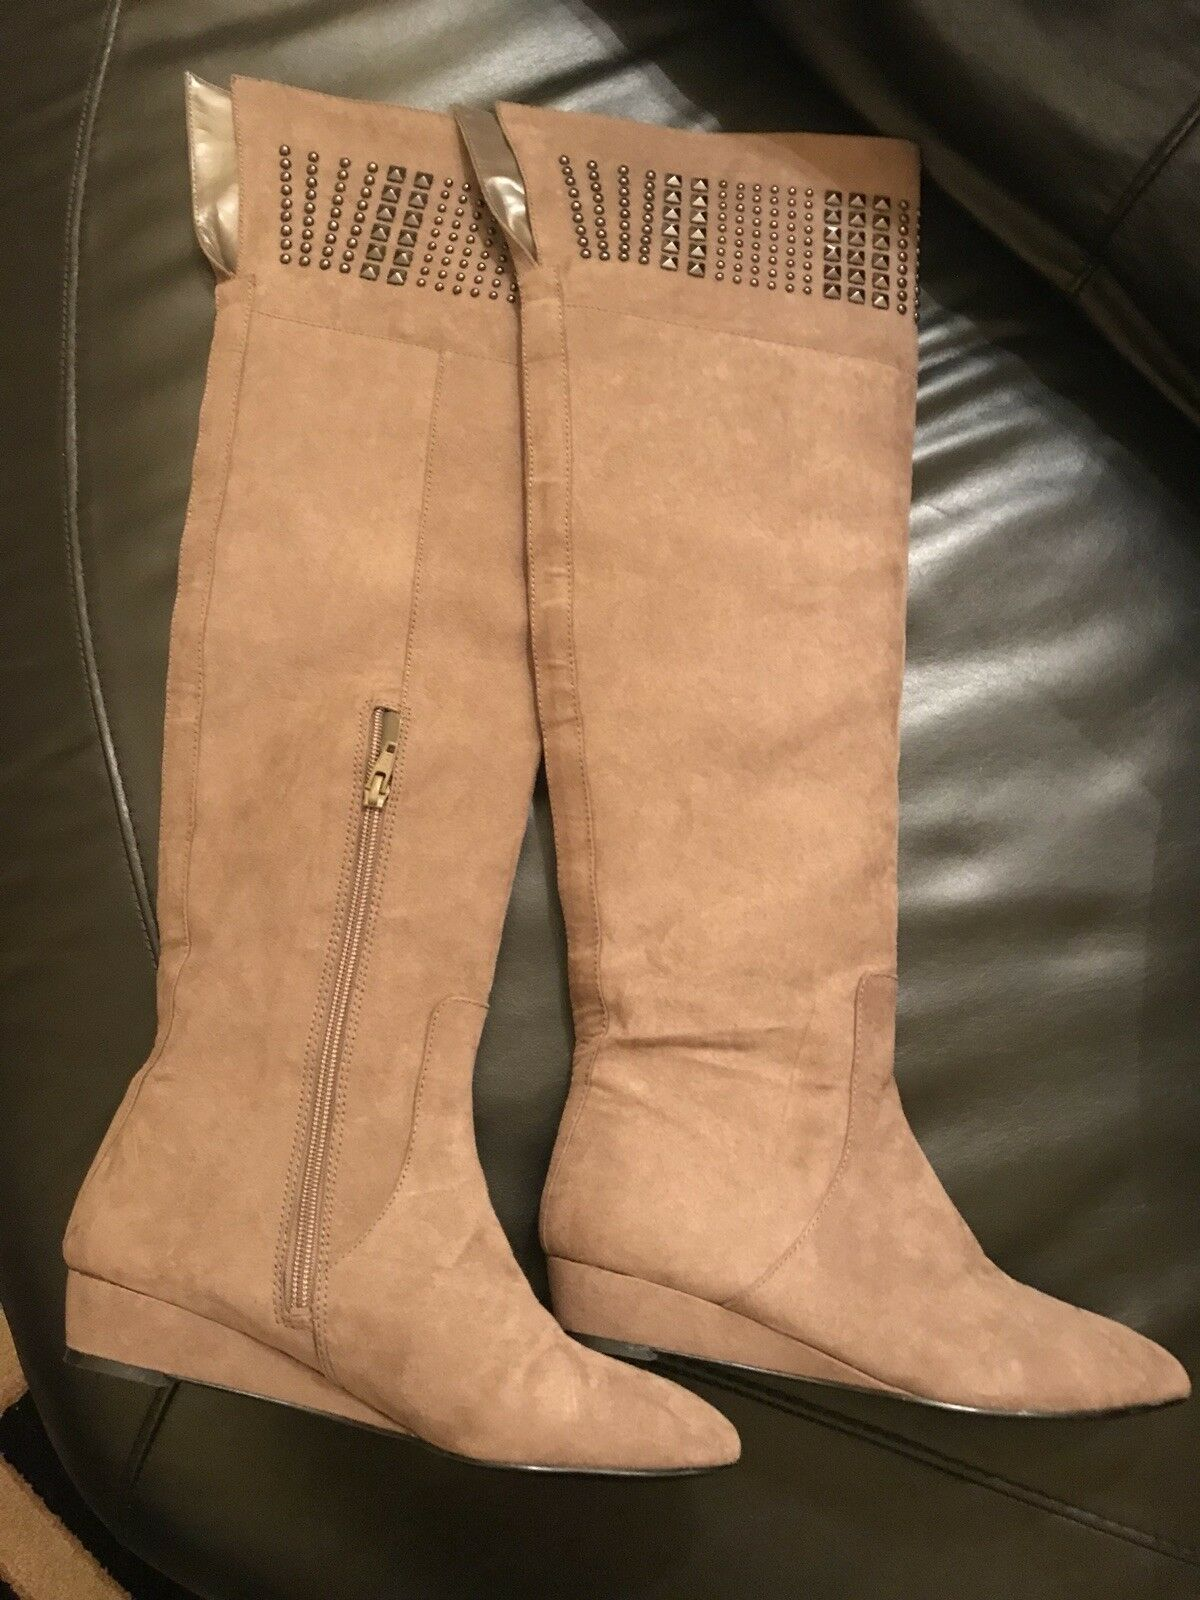 CARLOS Fashion Women's Over The Knee Boots 7,5